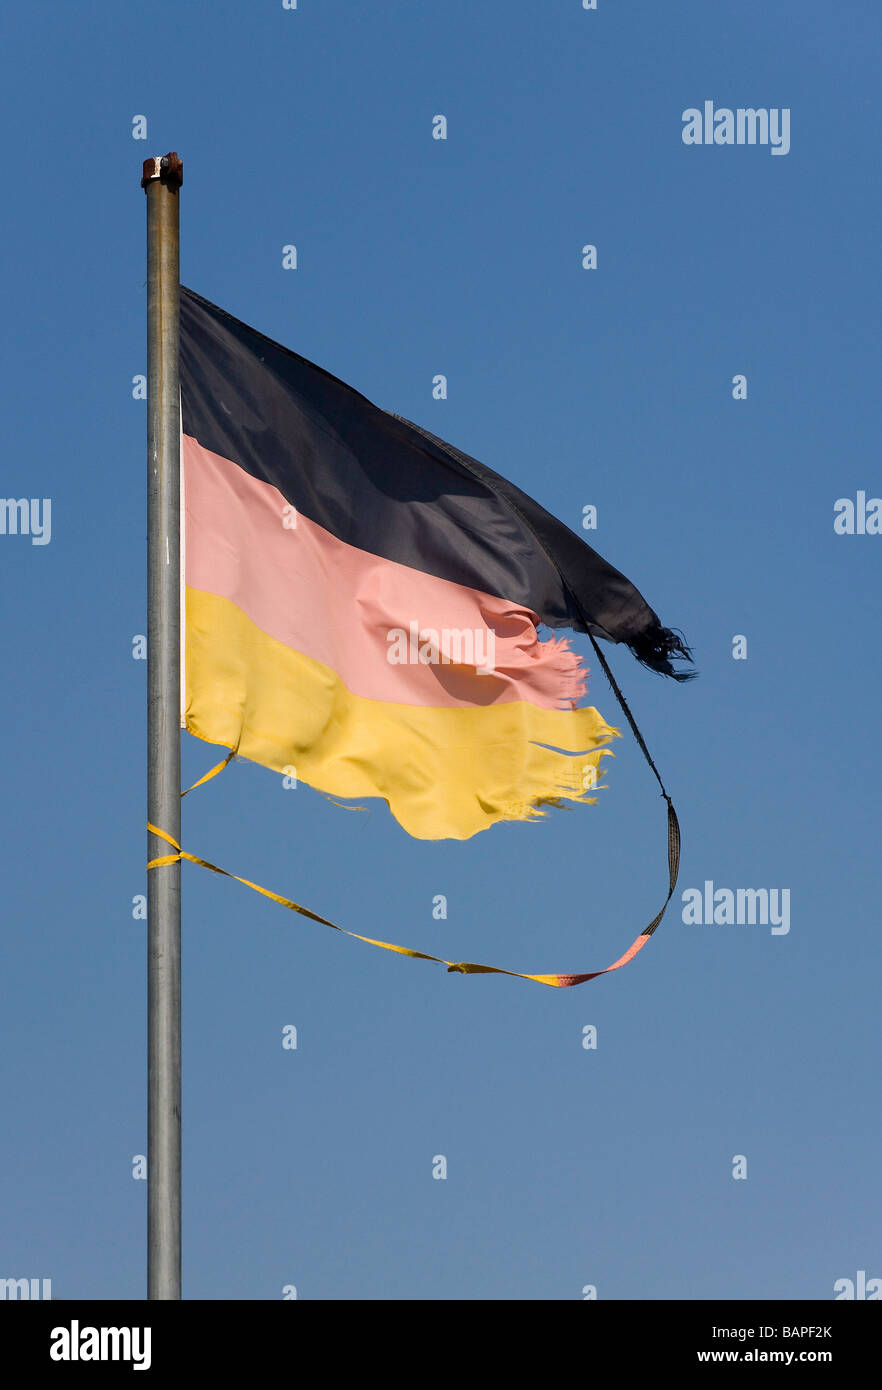 Torn German flag - Stock Image